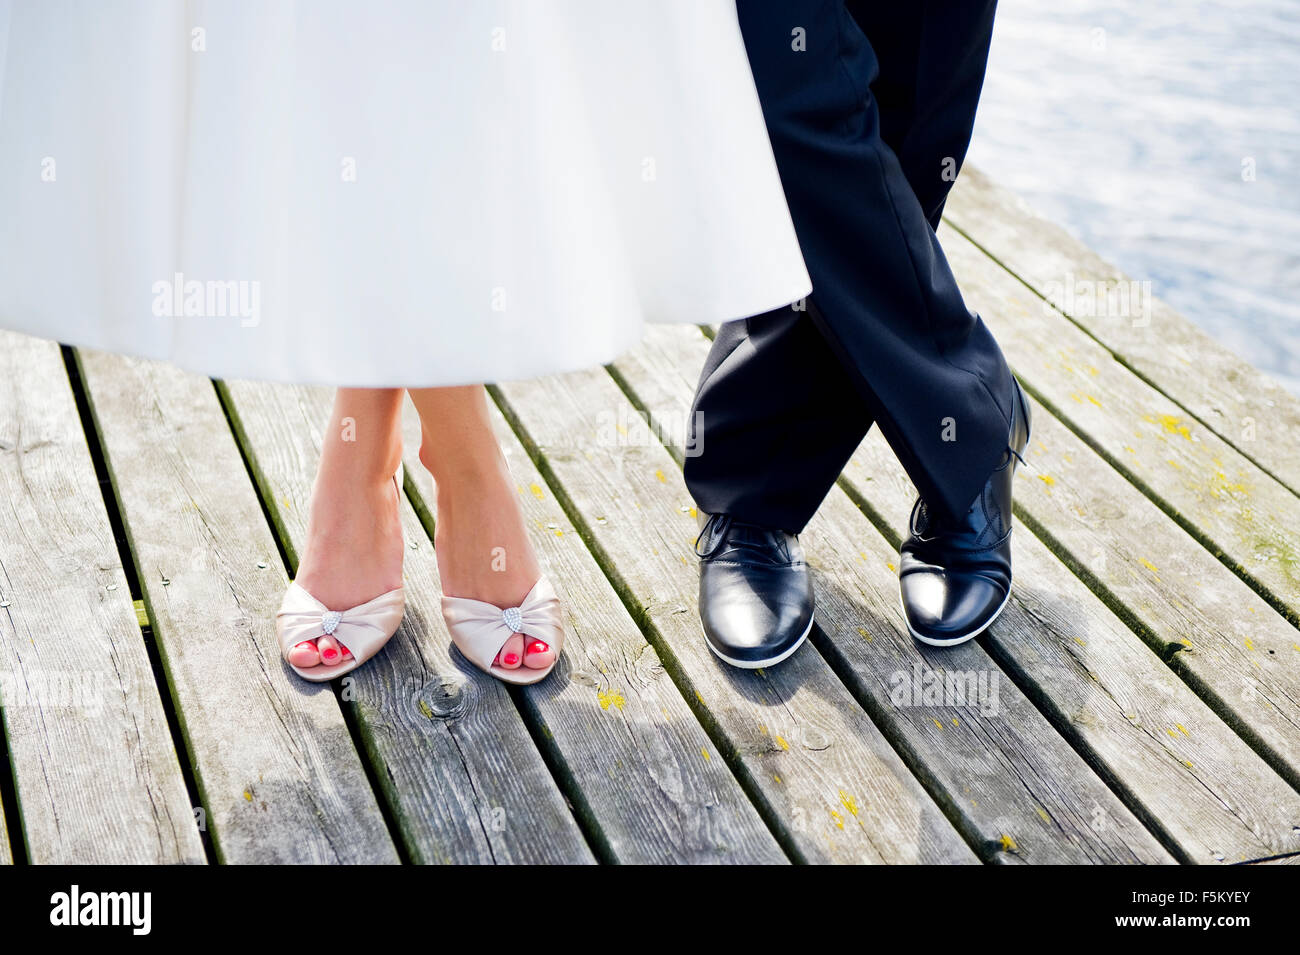 Sweden, Uppland, Arholma, Feet of man and woman standing on wooden pier Stock Photo